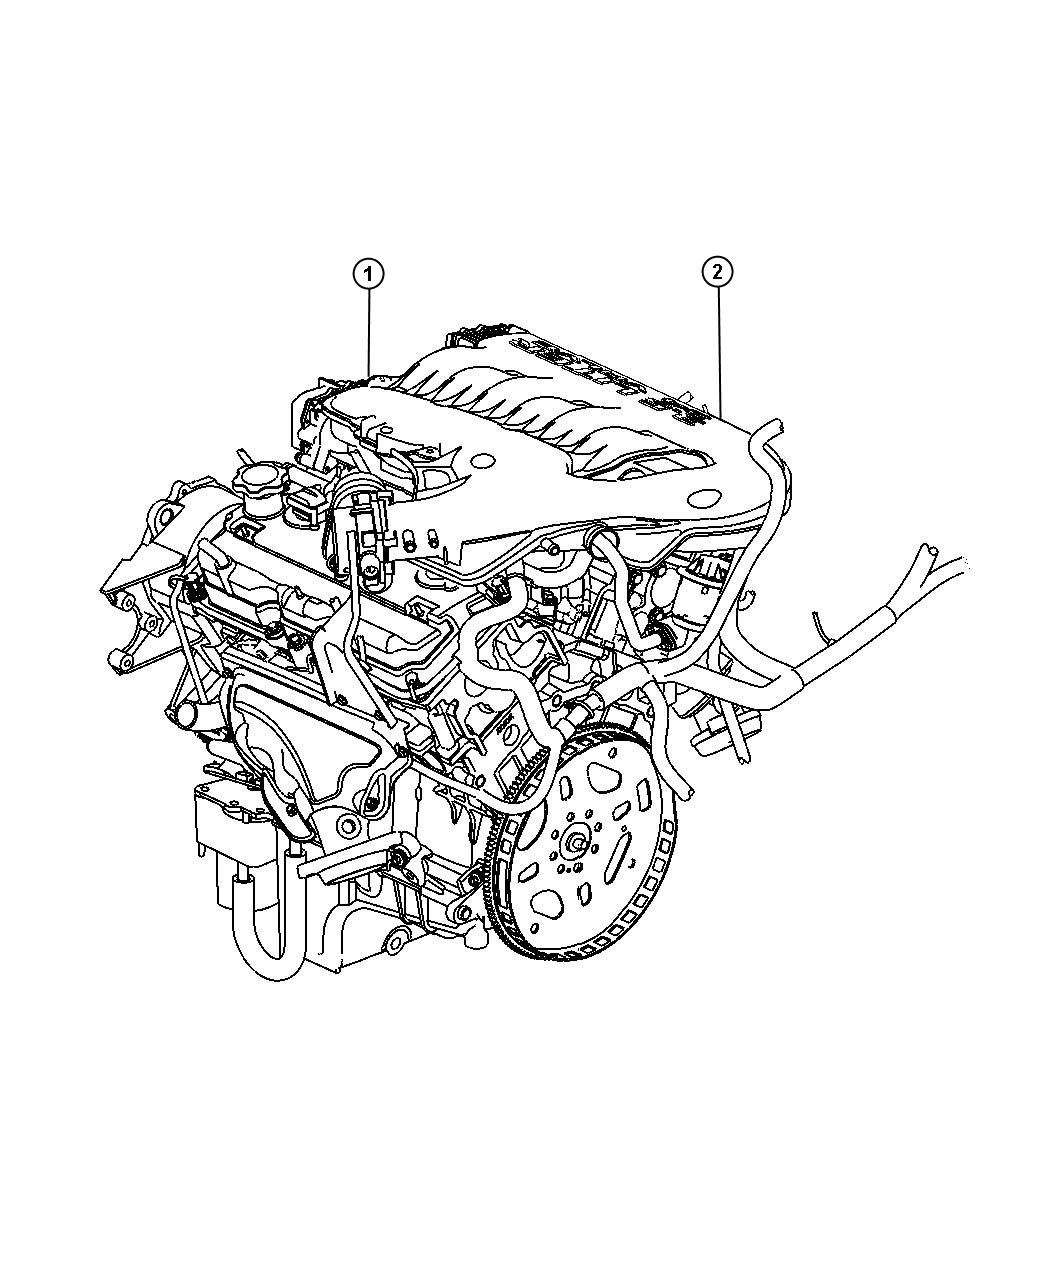 Chrysler Sebring Engine Long Block Remanufactured